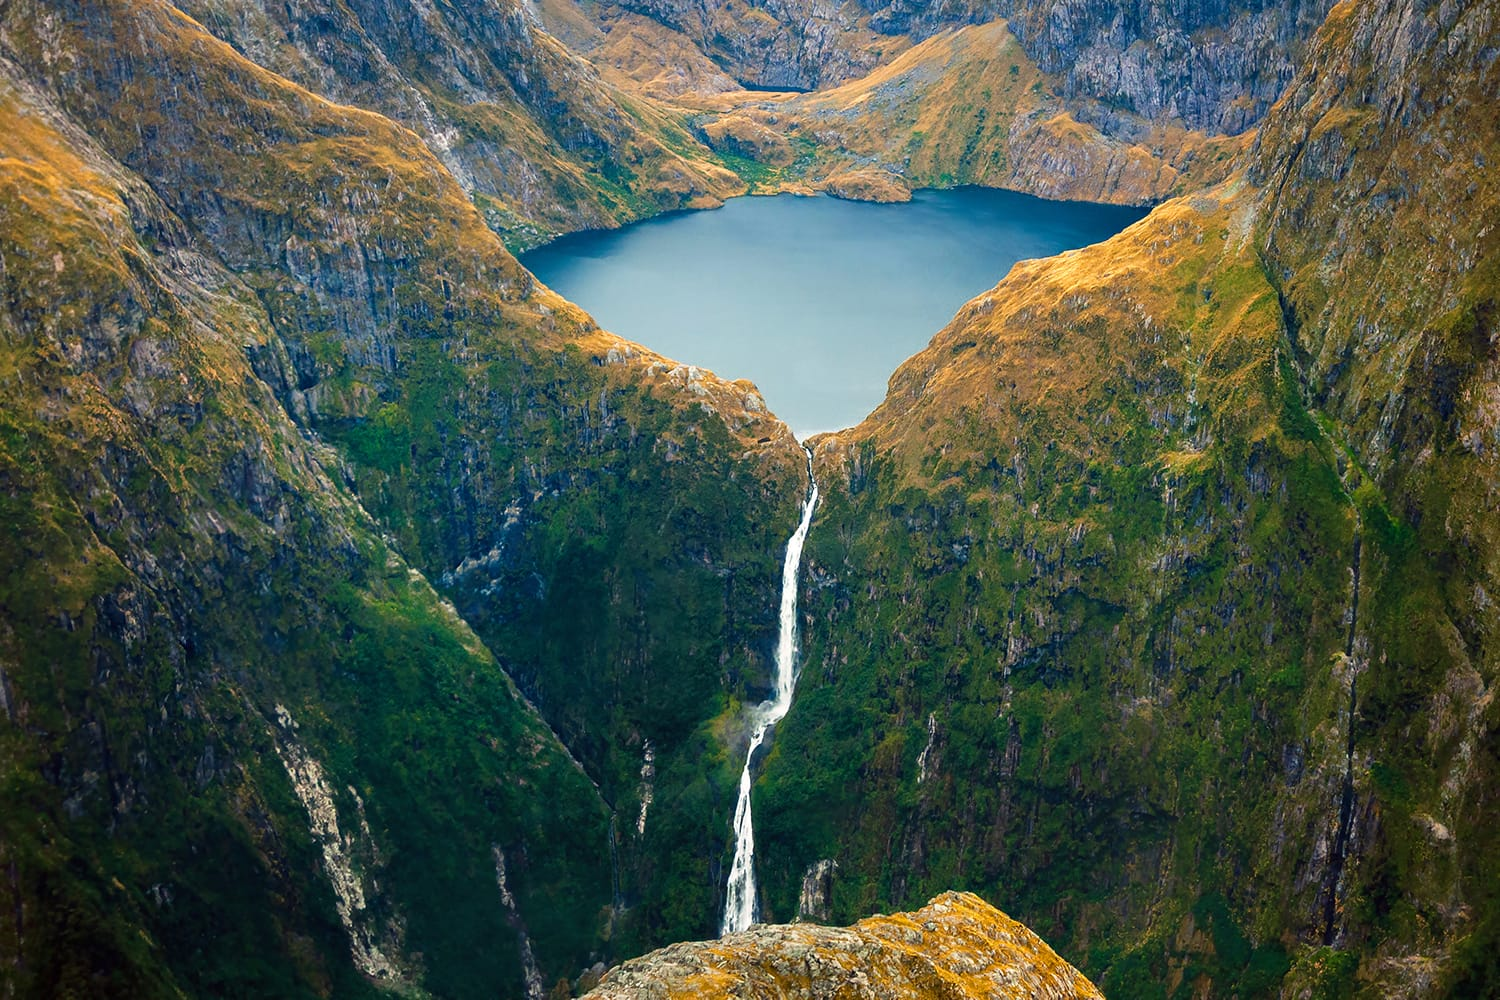 Amazing aerial view of mountain Lake Quill and Sutherland Falls on the scenic flight from Milford Sound to Queenstown, Fiordland, New Zealand